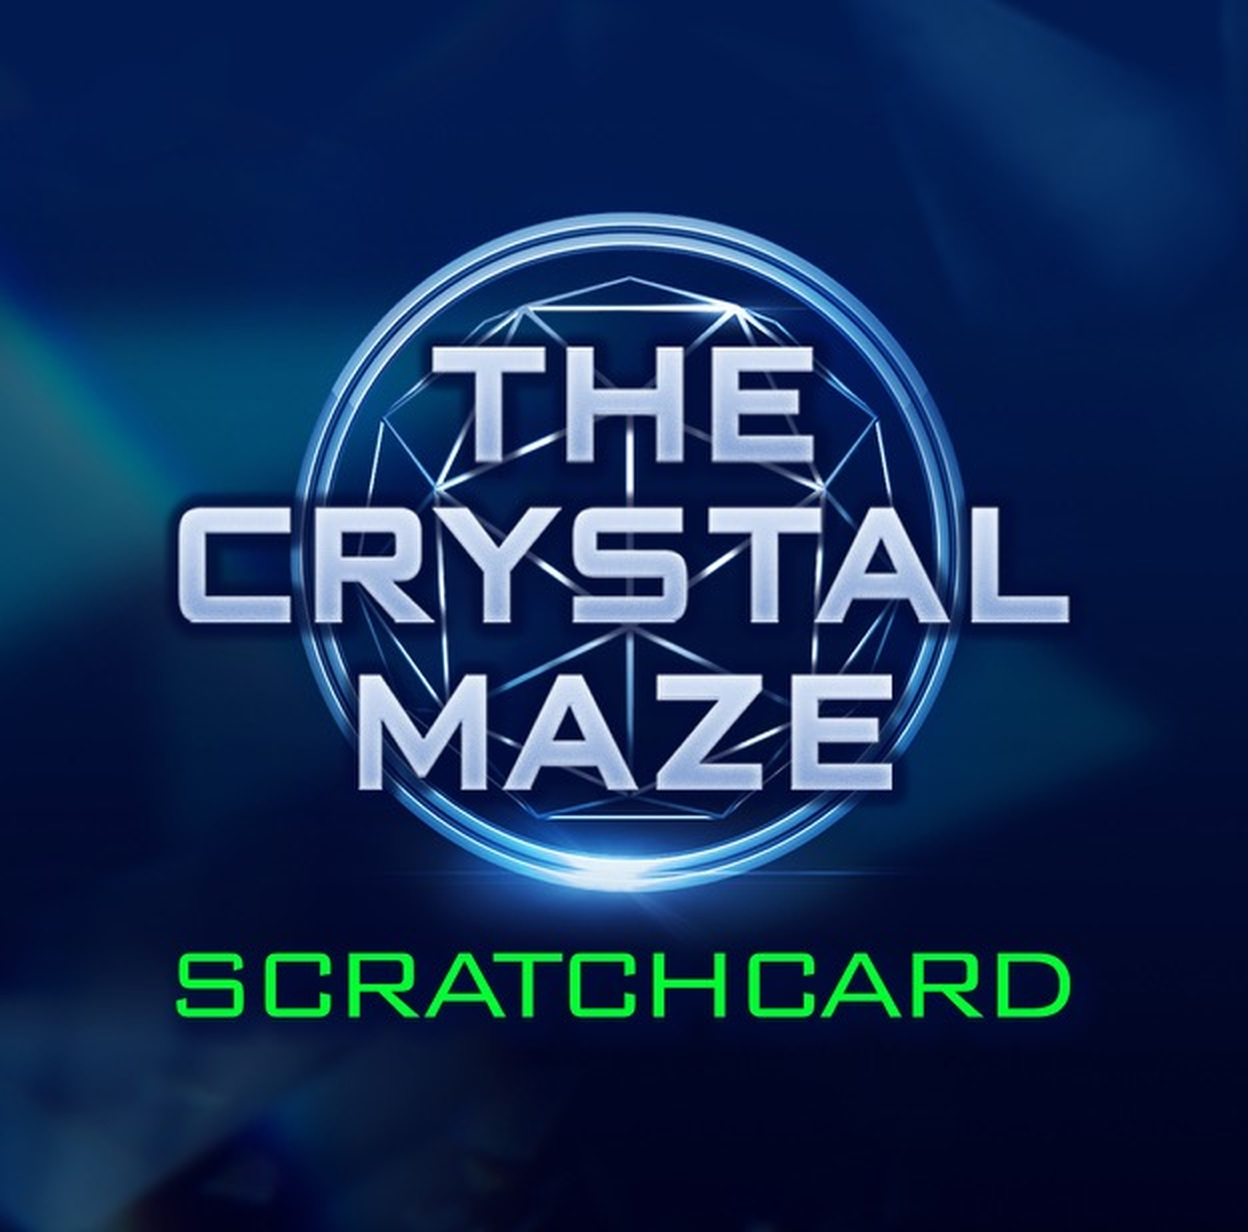 The Crystal Maze Scratchcard Online Slot Demo Game by Gamesys